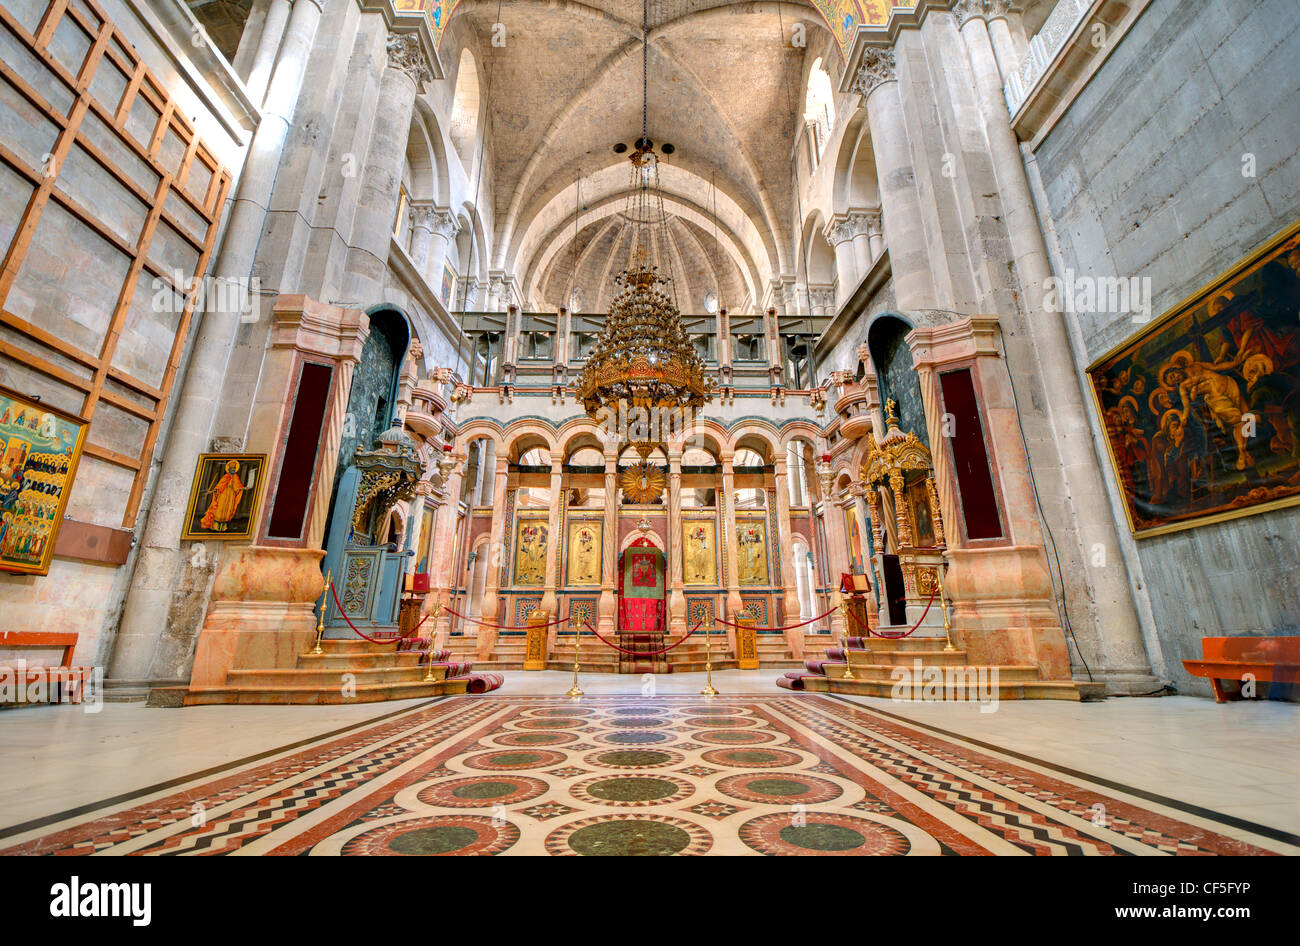 The Catholicon is the church at the center of the Church of the Holy Sepulchre in Jerusalem, Israel. - Stock Image